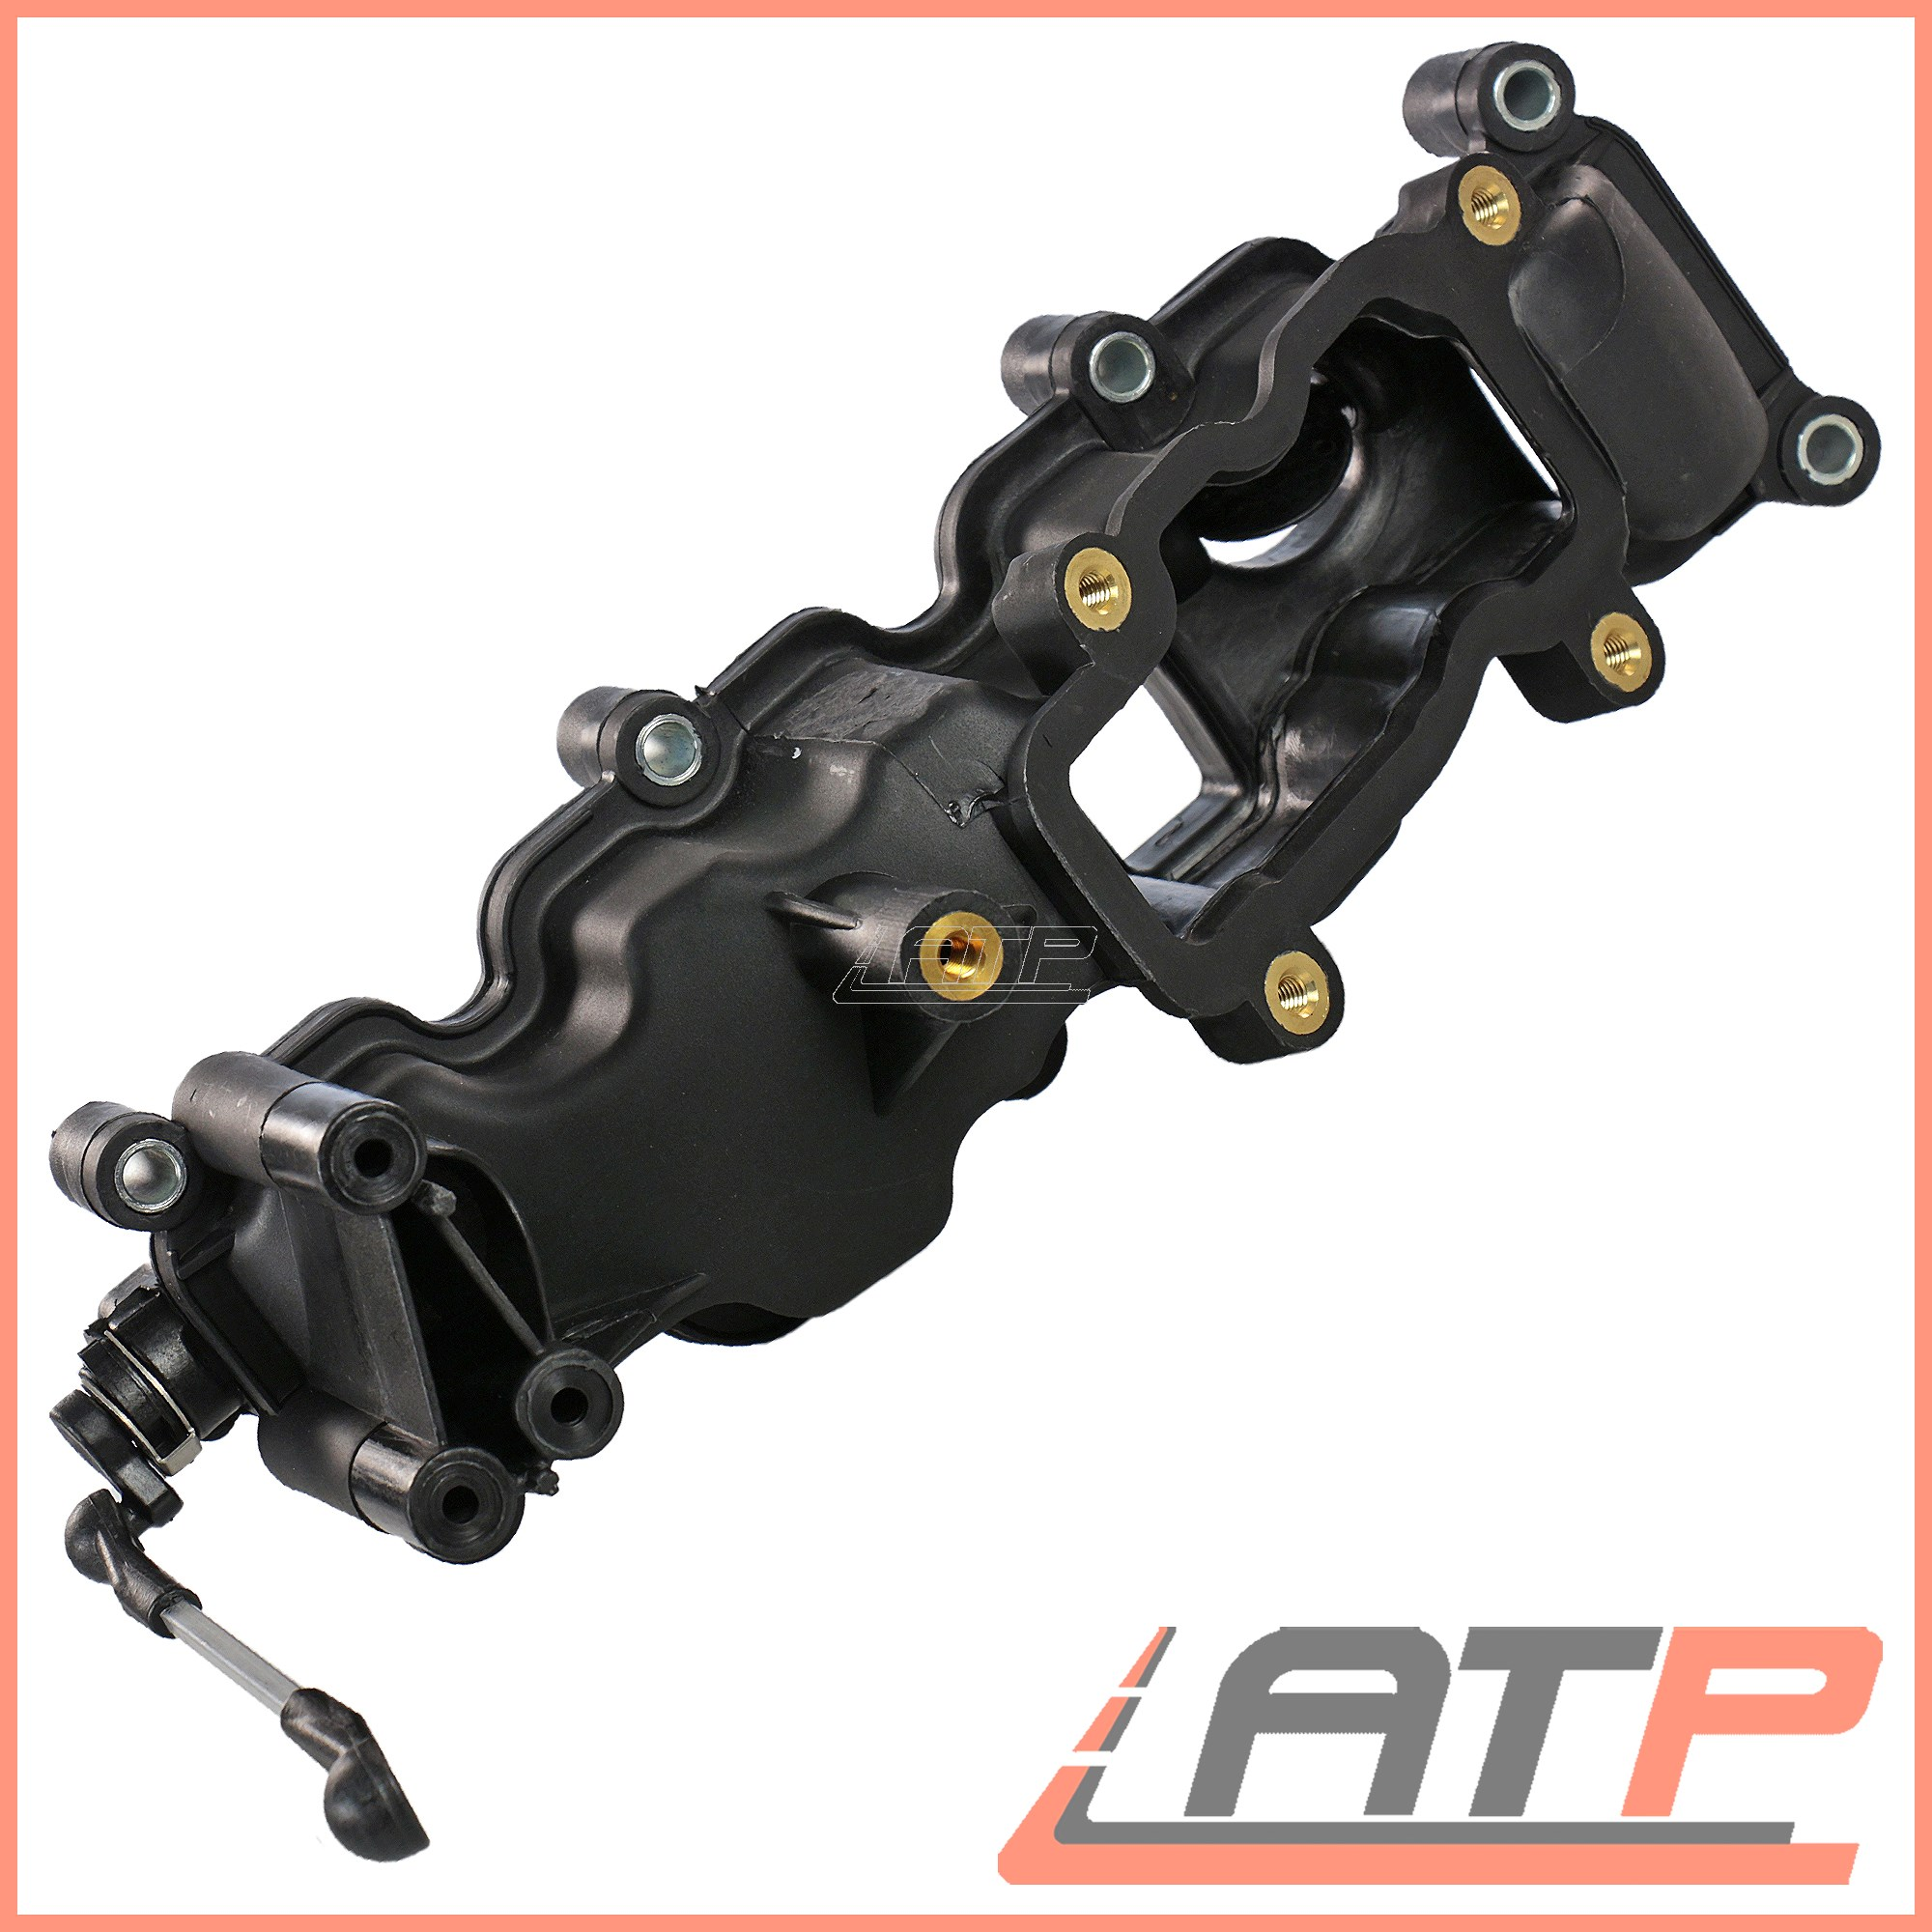 INLET INTAKE MANIFOLD LEFT ONLY FOR 2.7 AND 3.0 TDI ENGINES 31902717